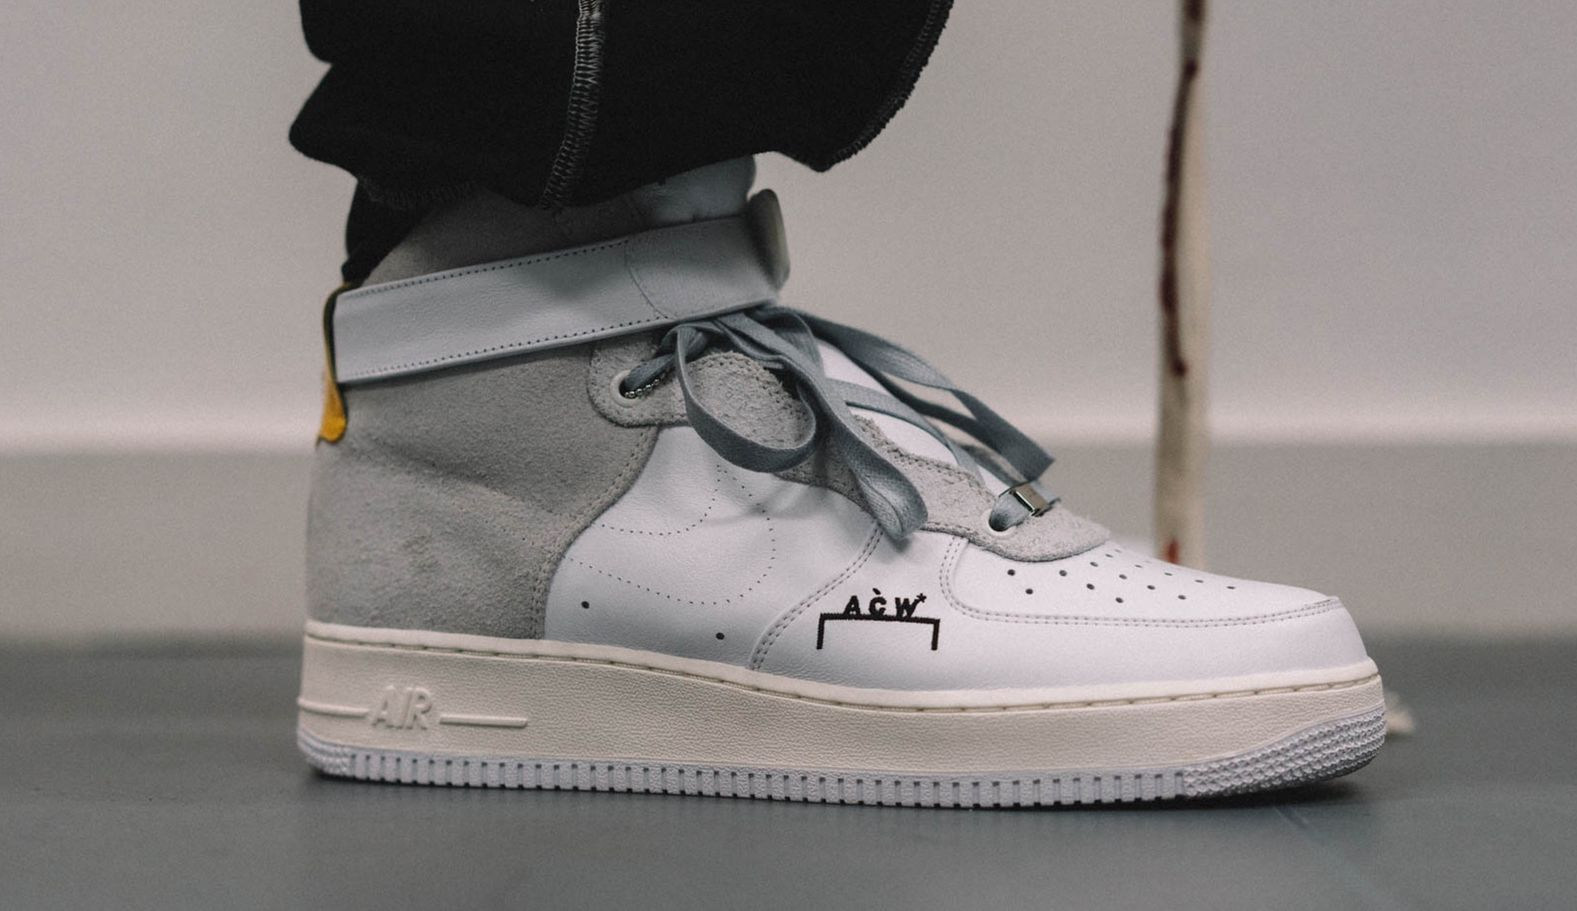 8ab784ed572d 50 Best Sneakers of 2017 So Far - Coolest New Shoe Releases